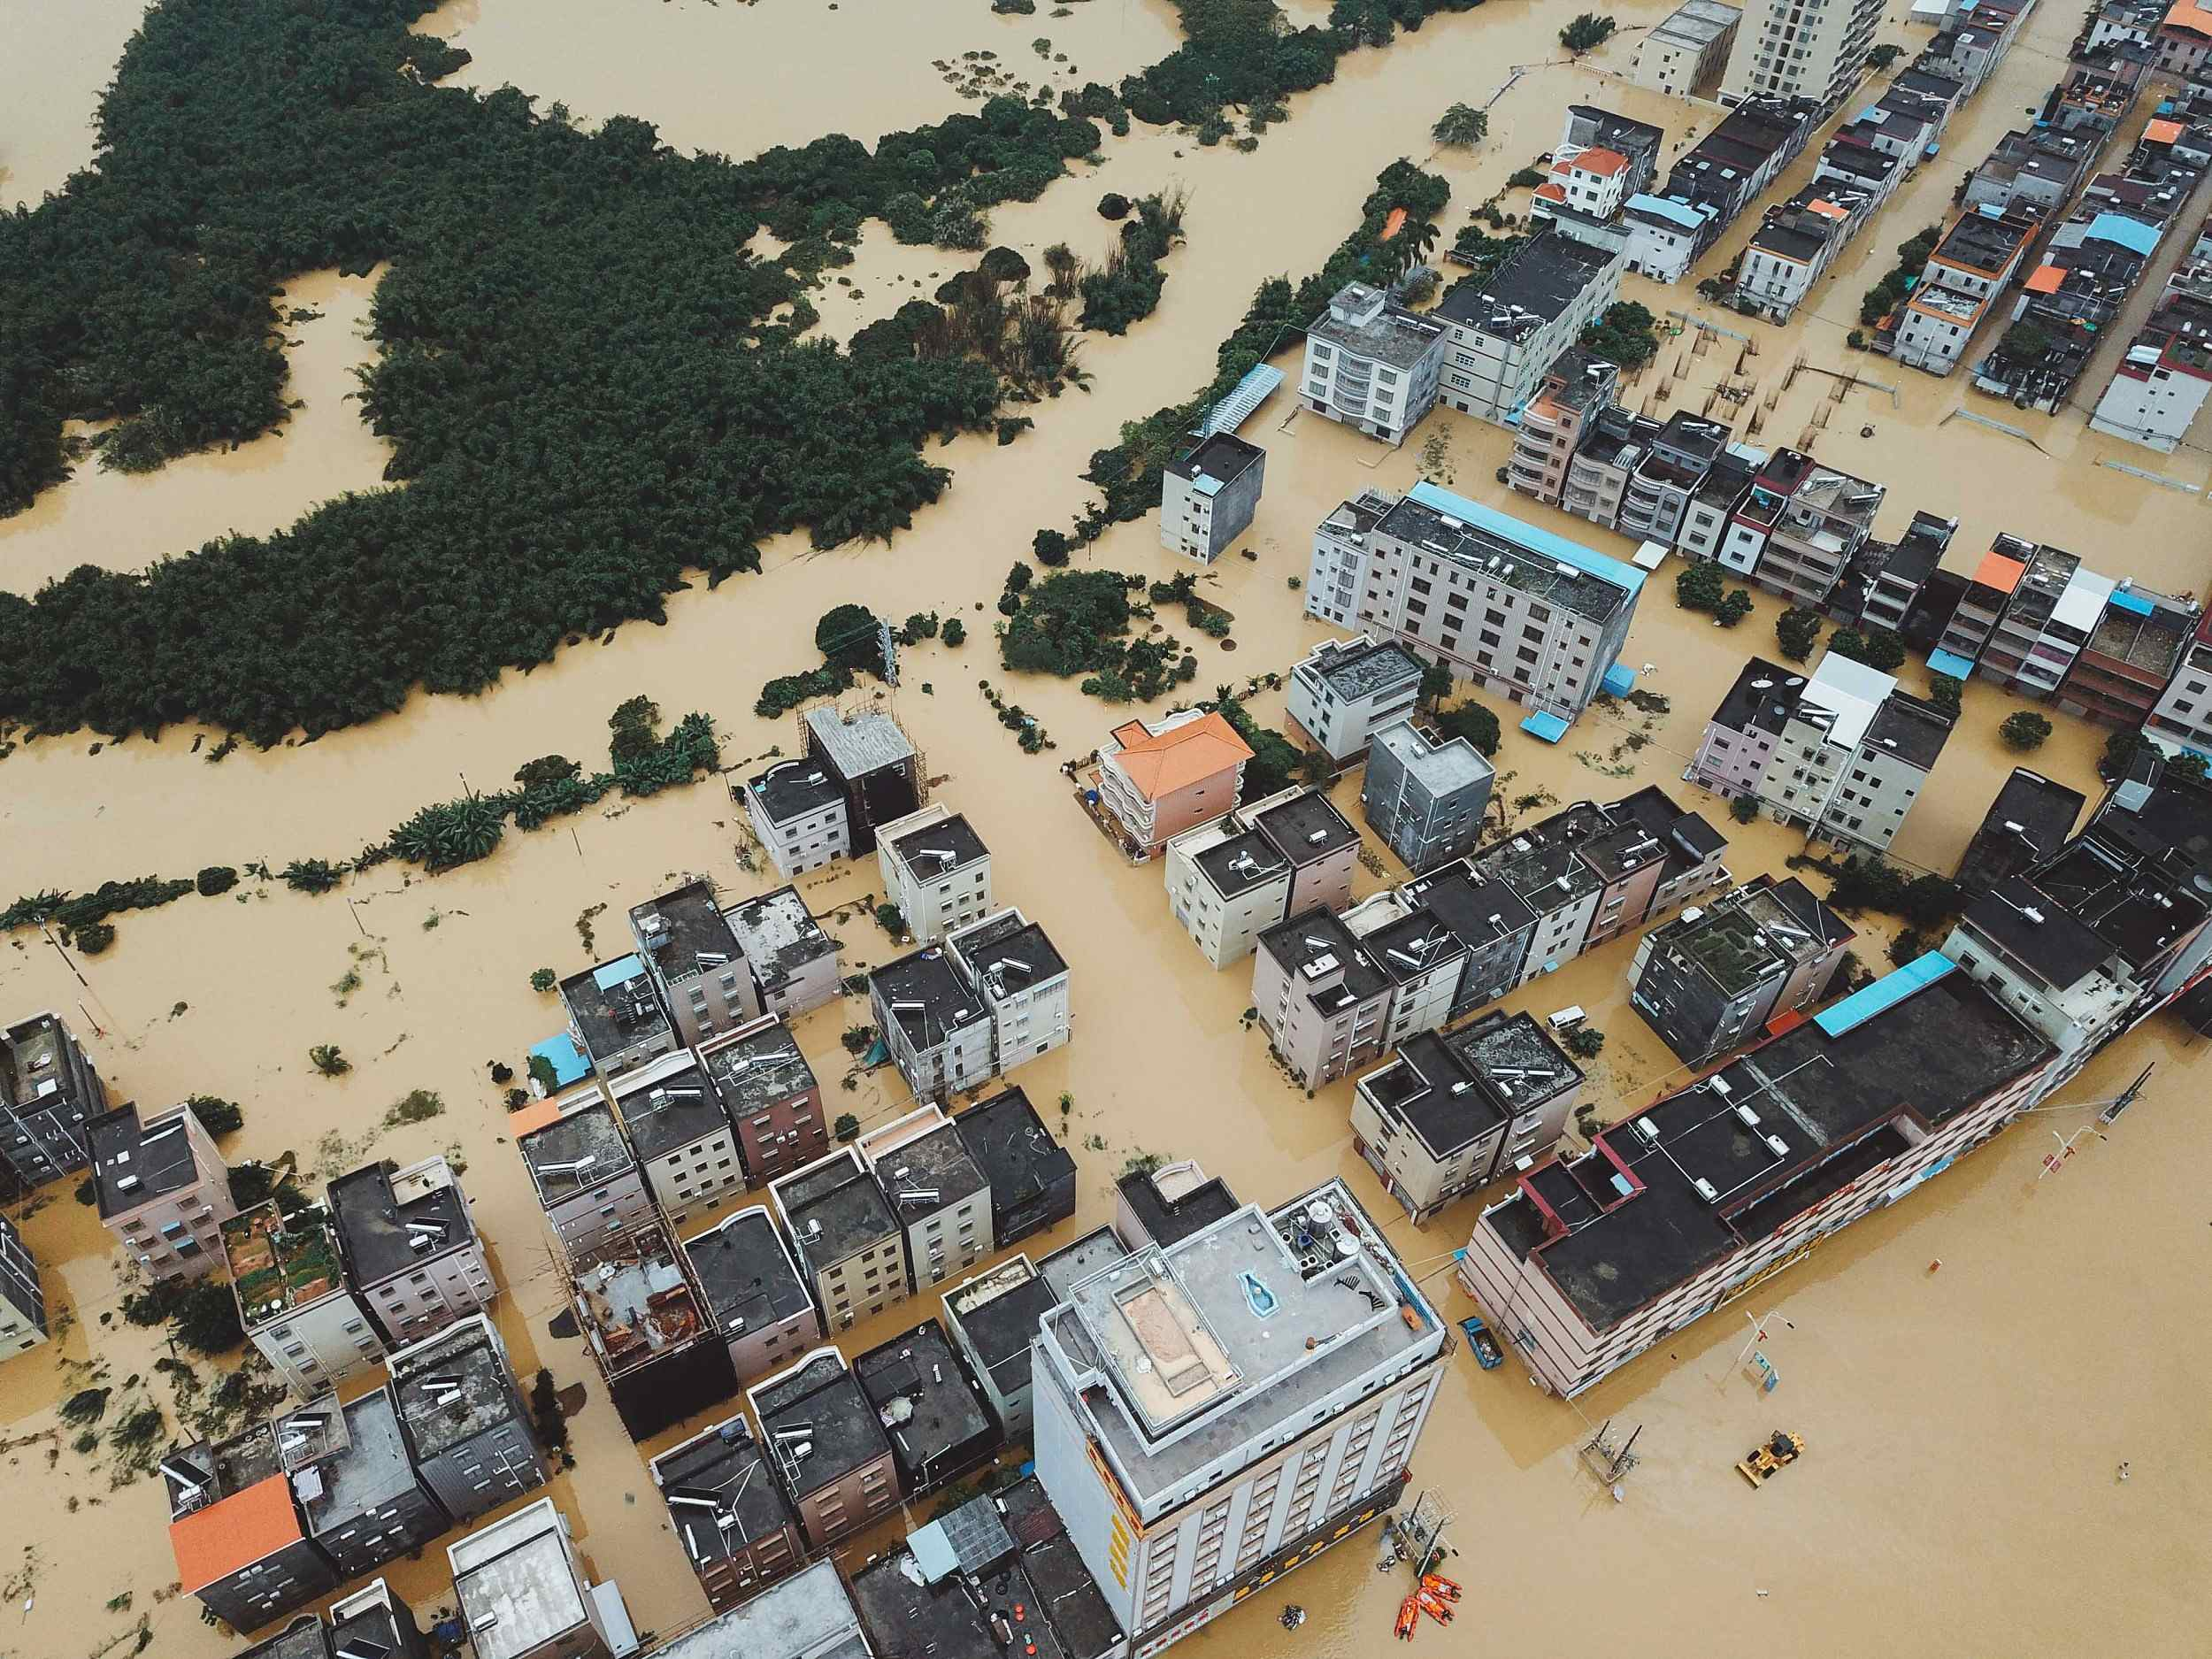 Torrential downpours hit South China's Guangdong Province